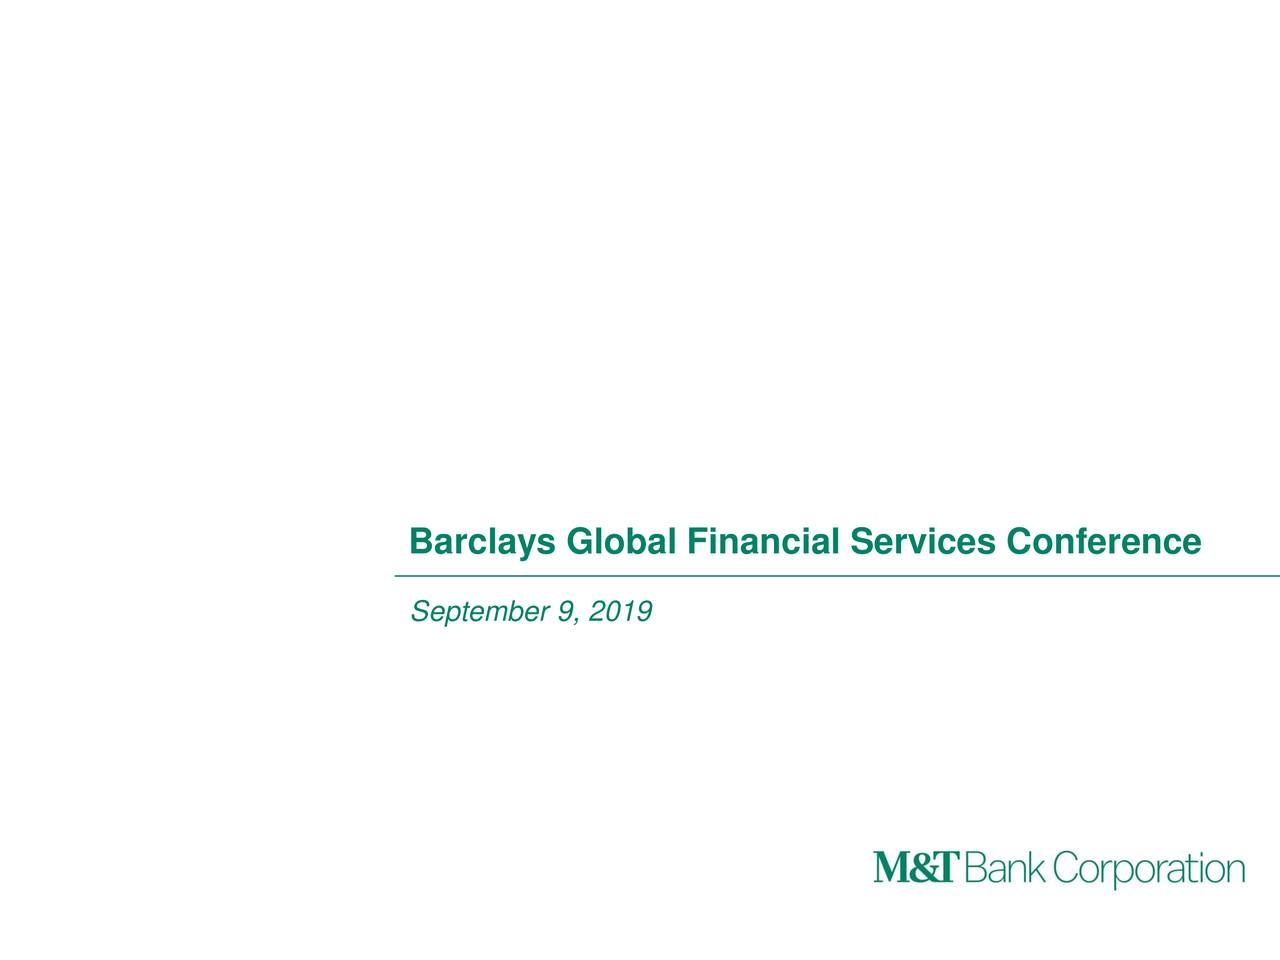 Barclays Global Financial Services Conference